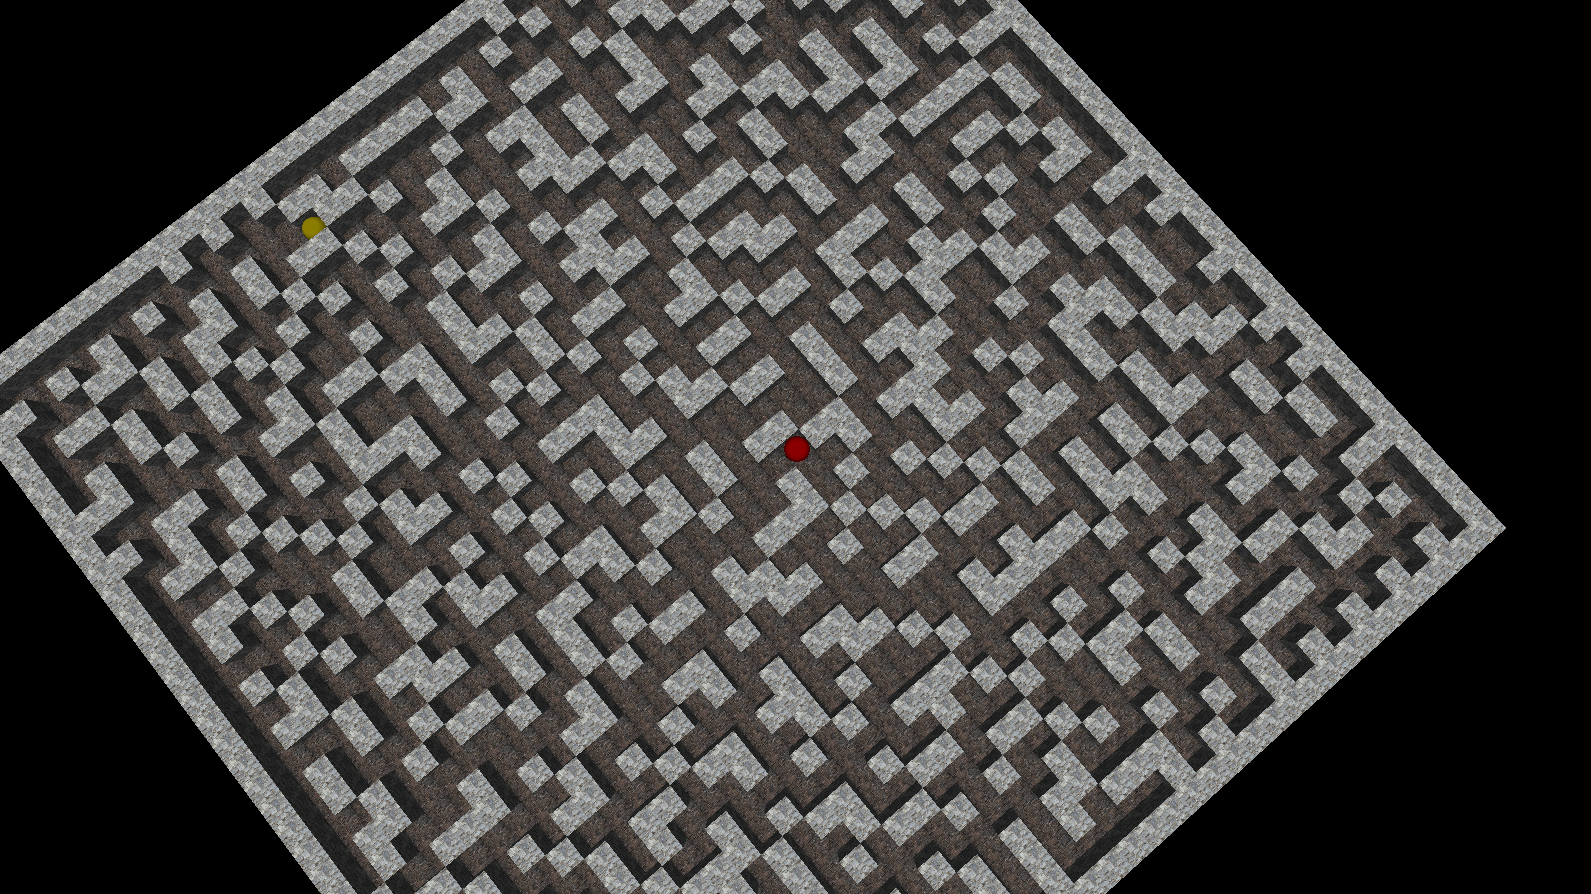 SuperSDG2: The maze game (С++ & OpenGL) – Sergey Tihon's Blog